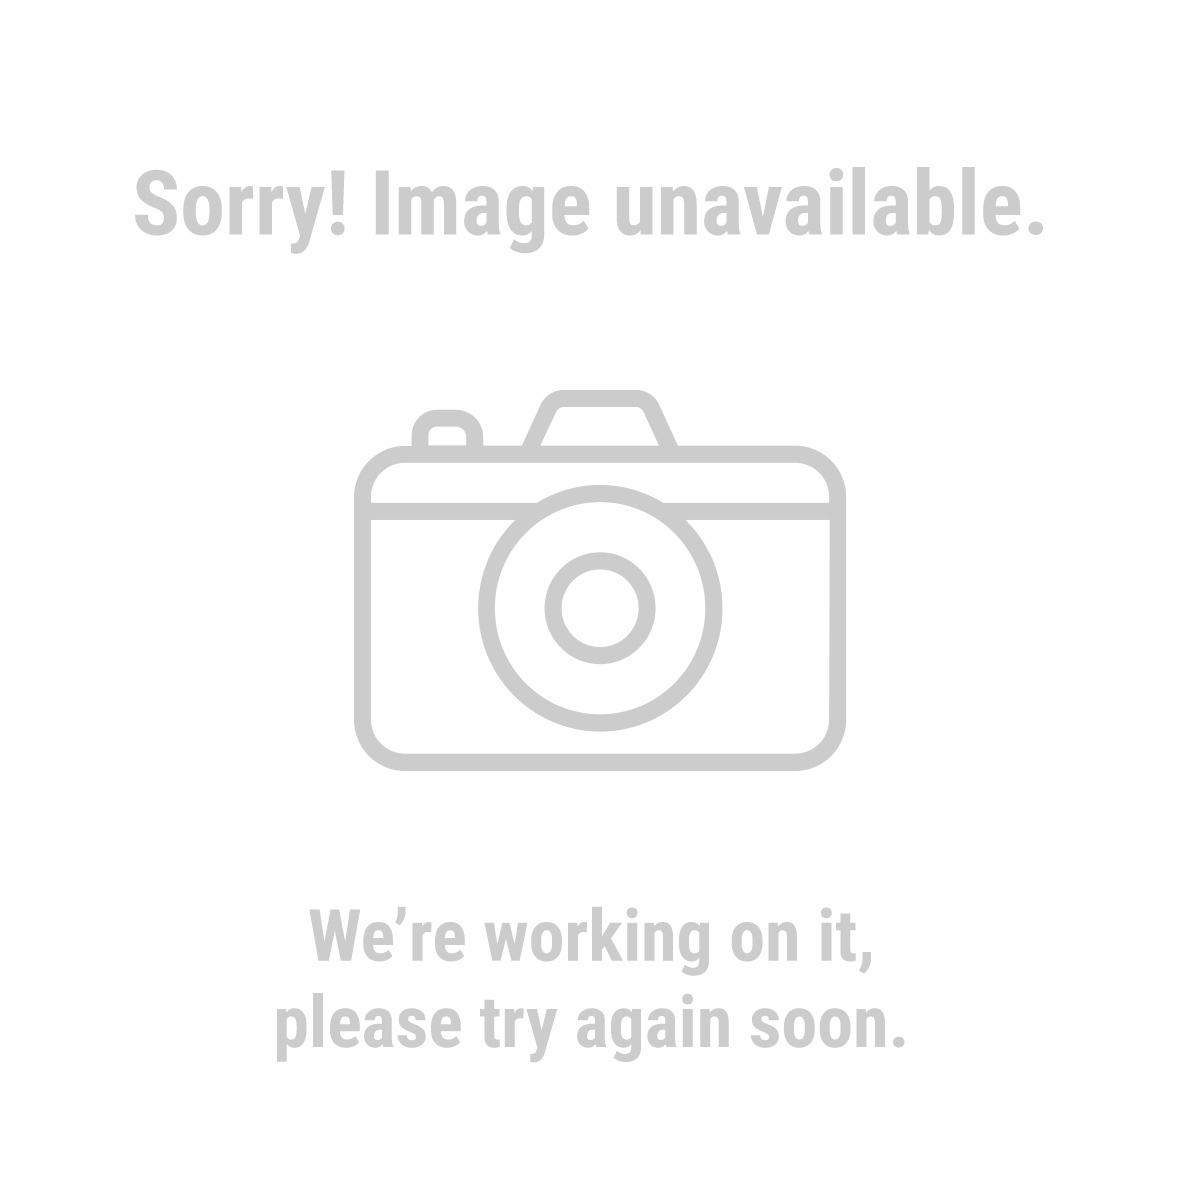 Pittsburgh Motorcycle 60536 1500 Lb. Capacity ATV/Motorcycle Lift